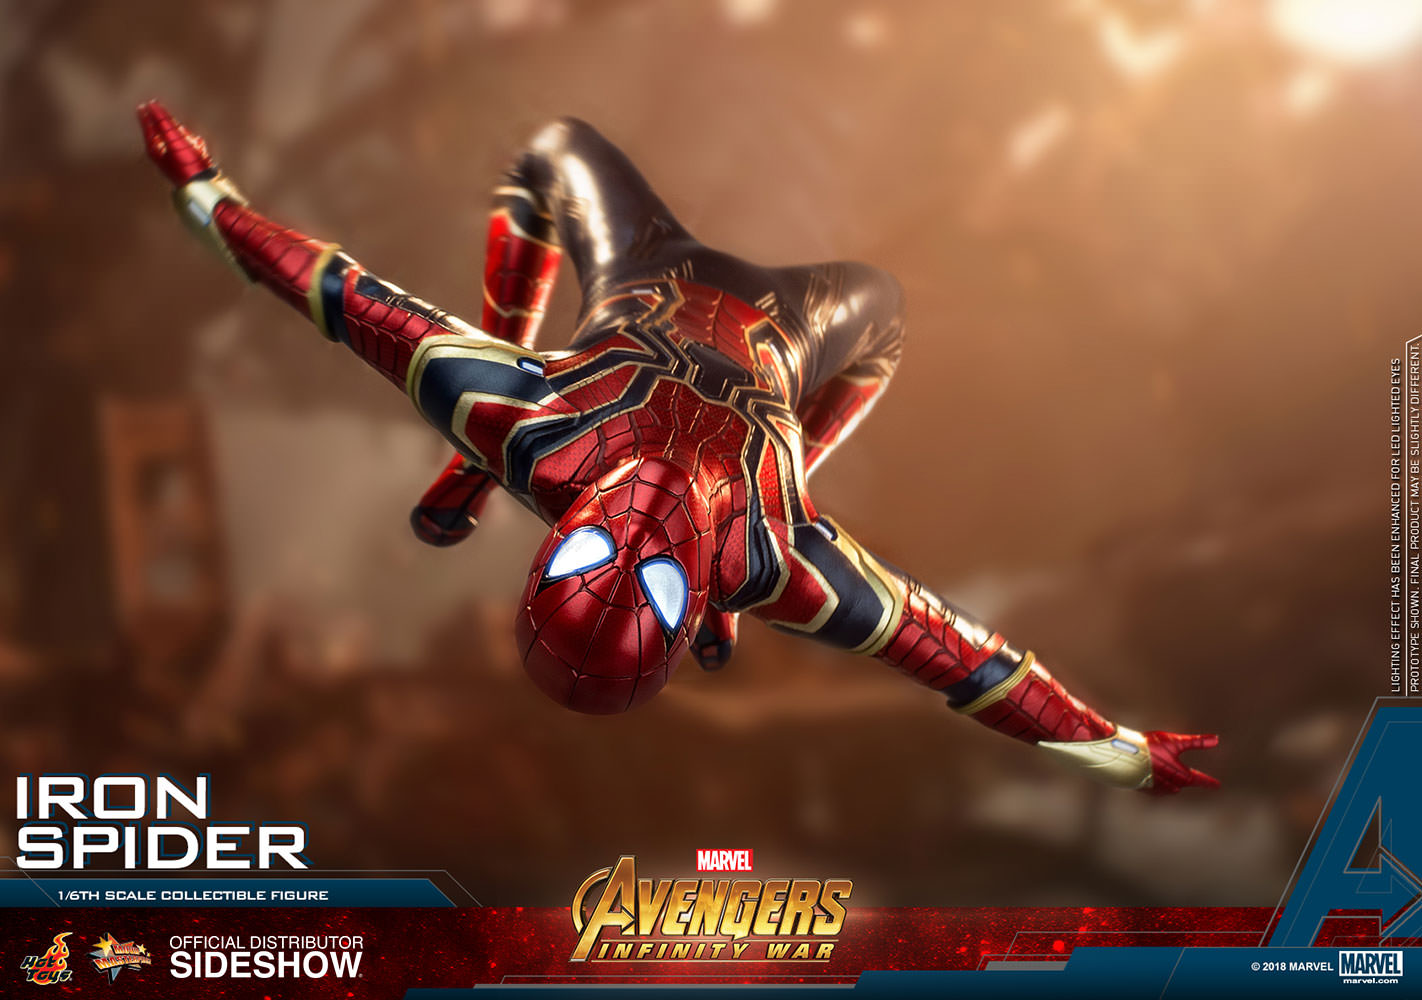 marvel-avengers-infinity-war-iron-spider-sixth-scale-hot-toys-903471-21